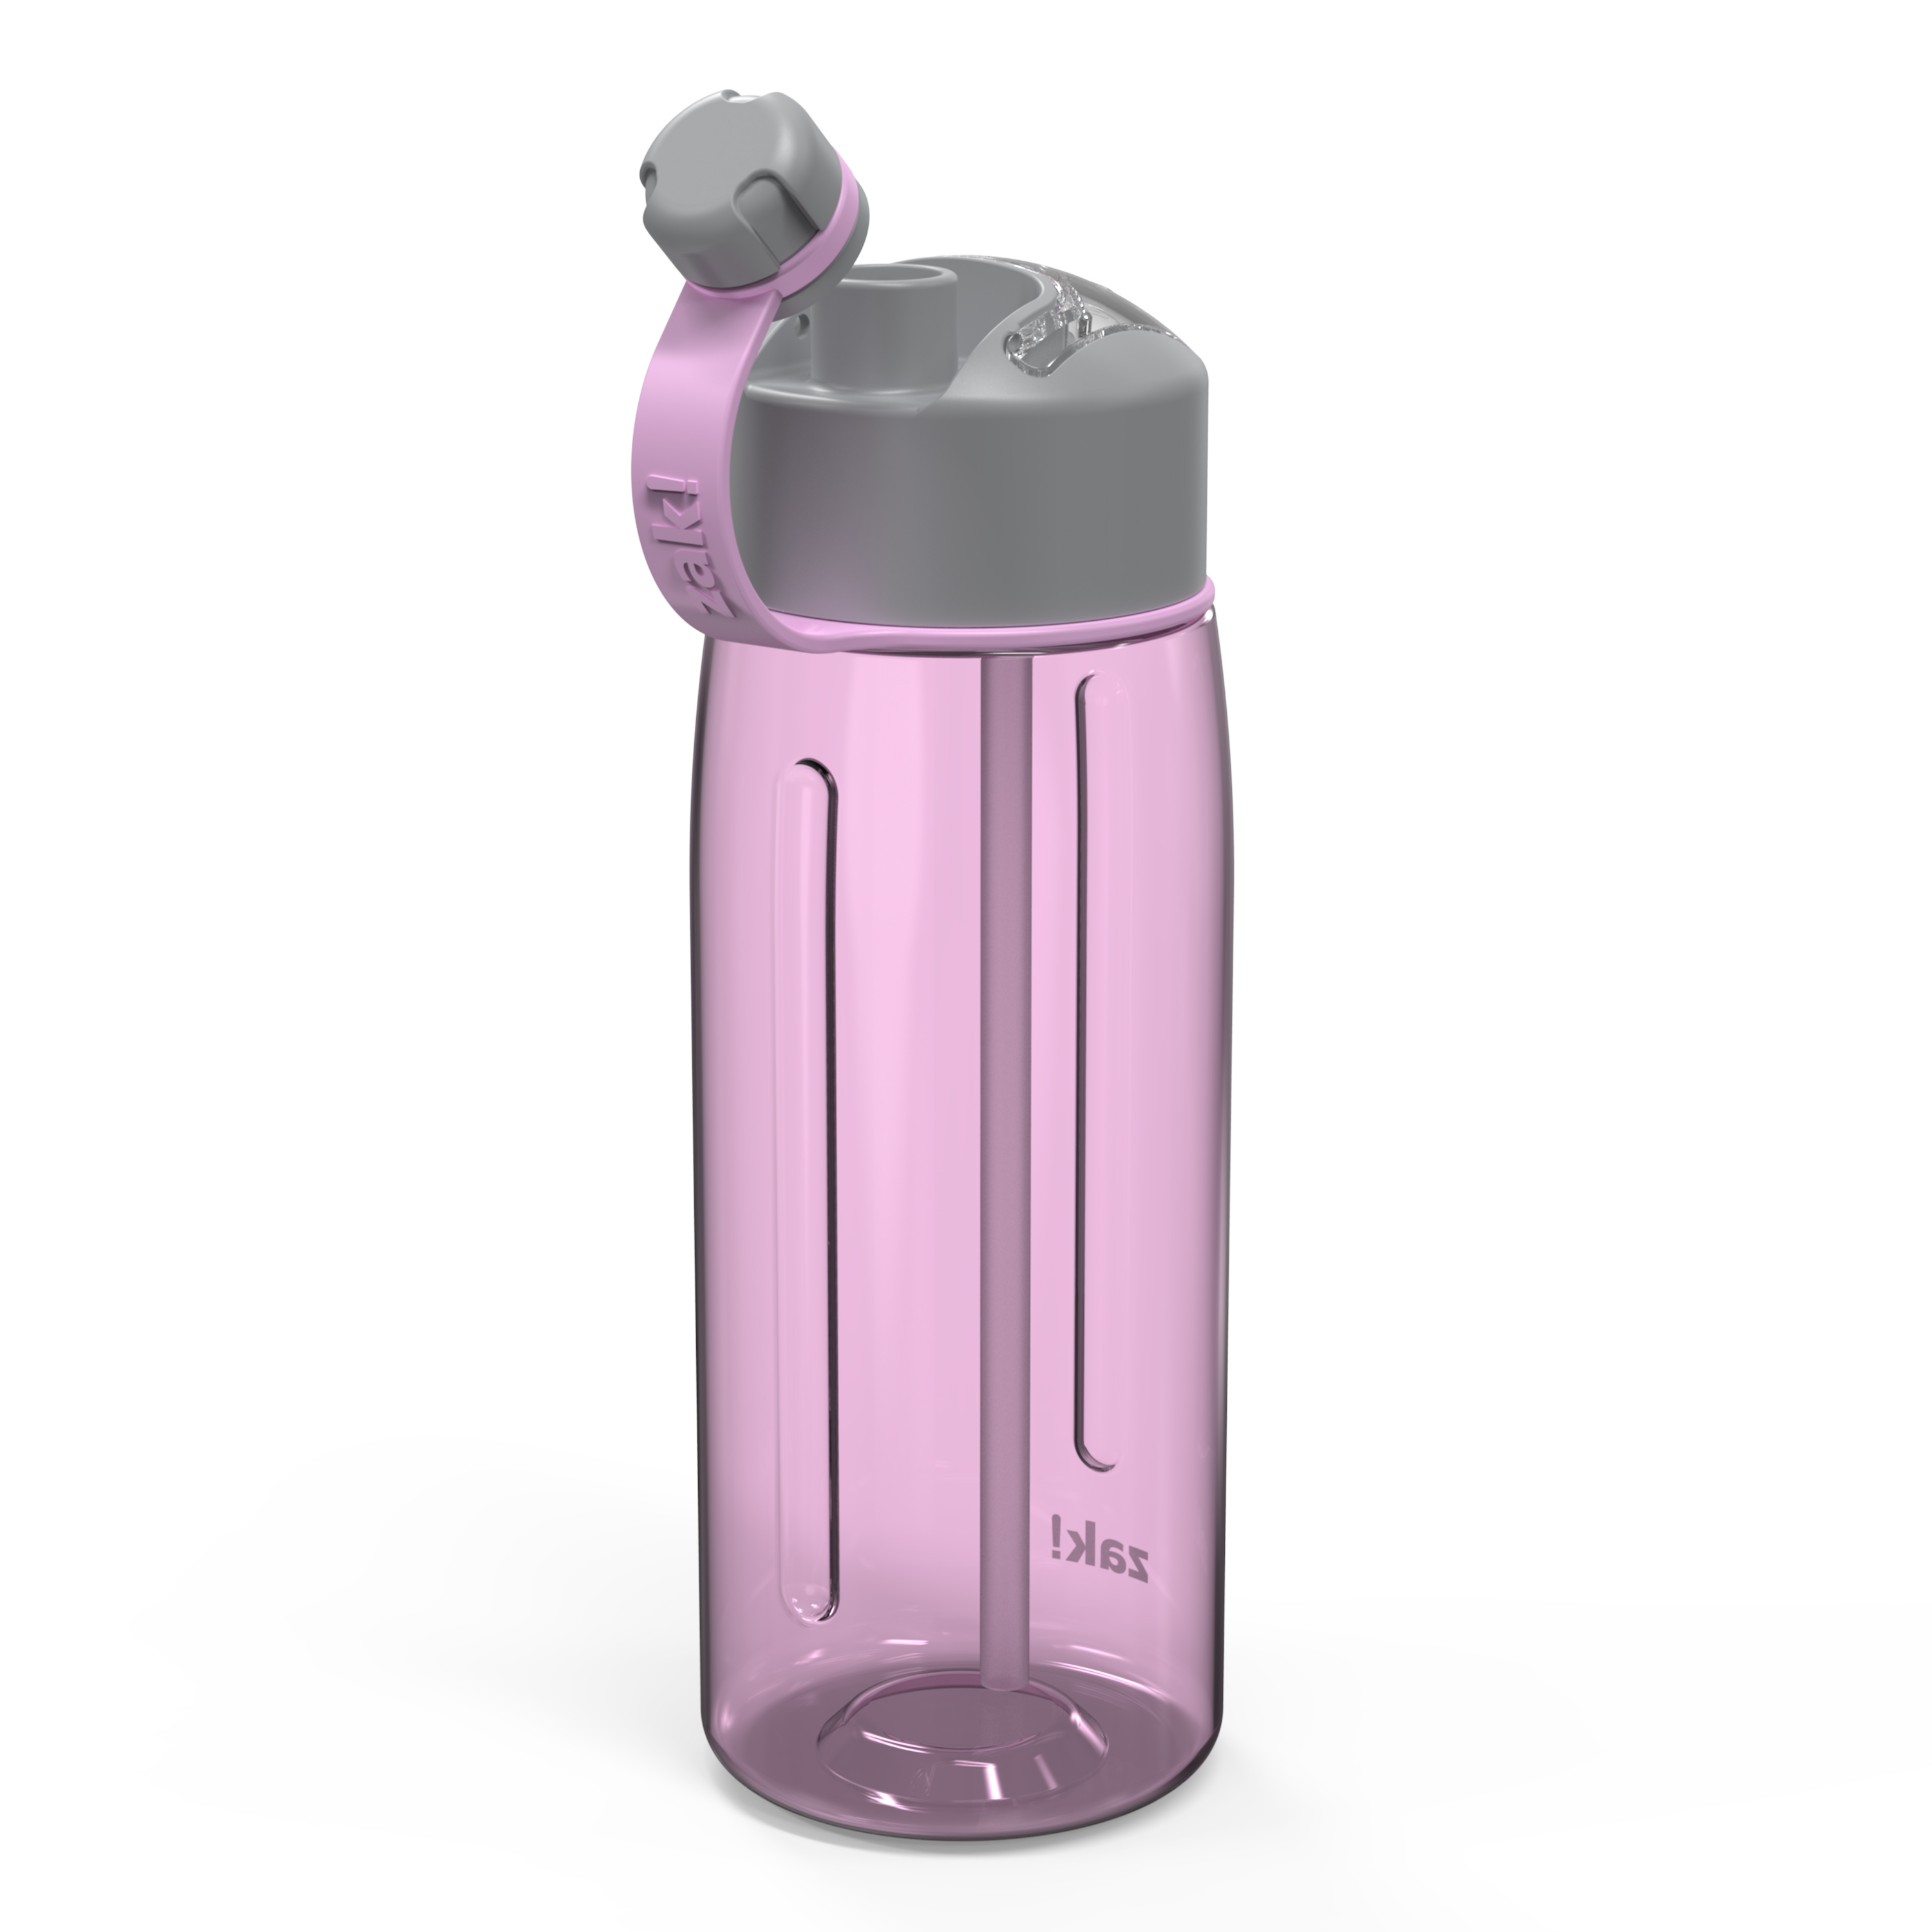 Genesis 32 ounce Water Bottle, Lilac slideshow image 7